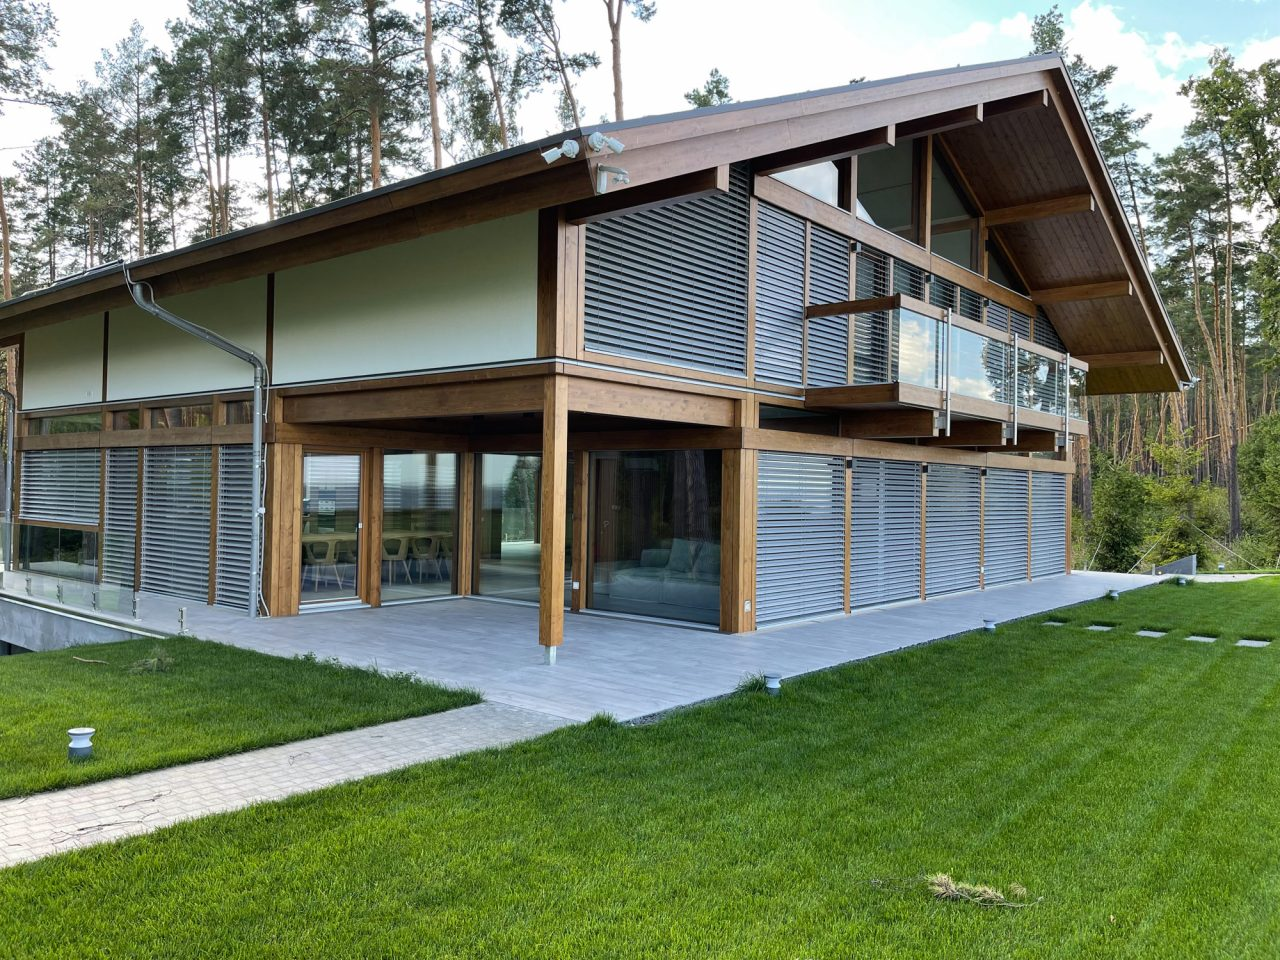 Hlass_house_KAGER - Hurii_20